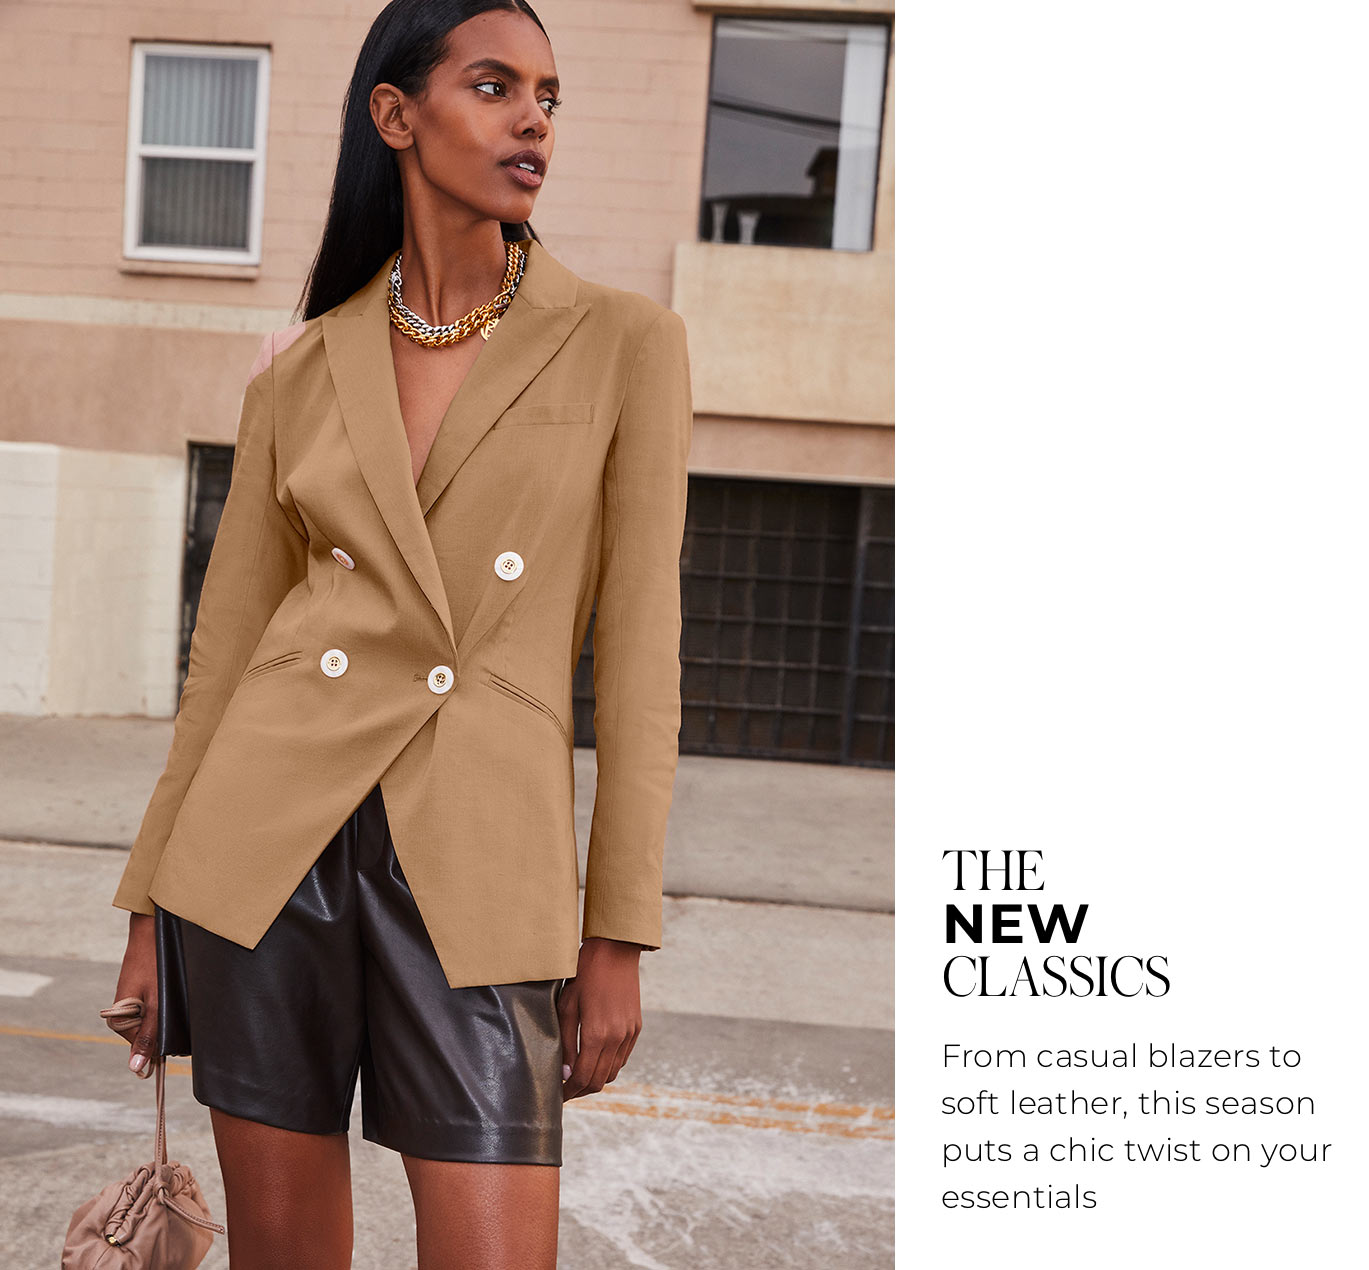 """The New Classics From casual blazers to soft leather, this season puts a chic twist on your essentials"""